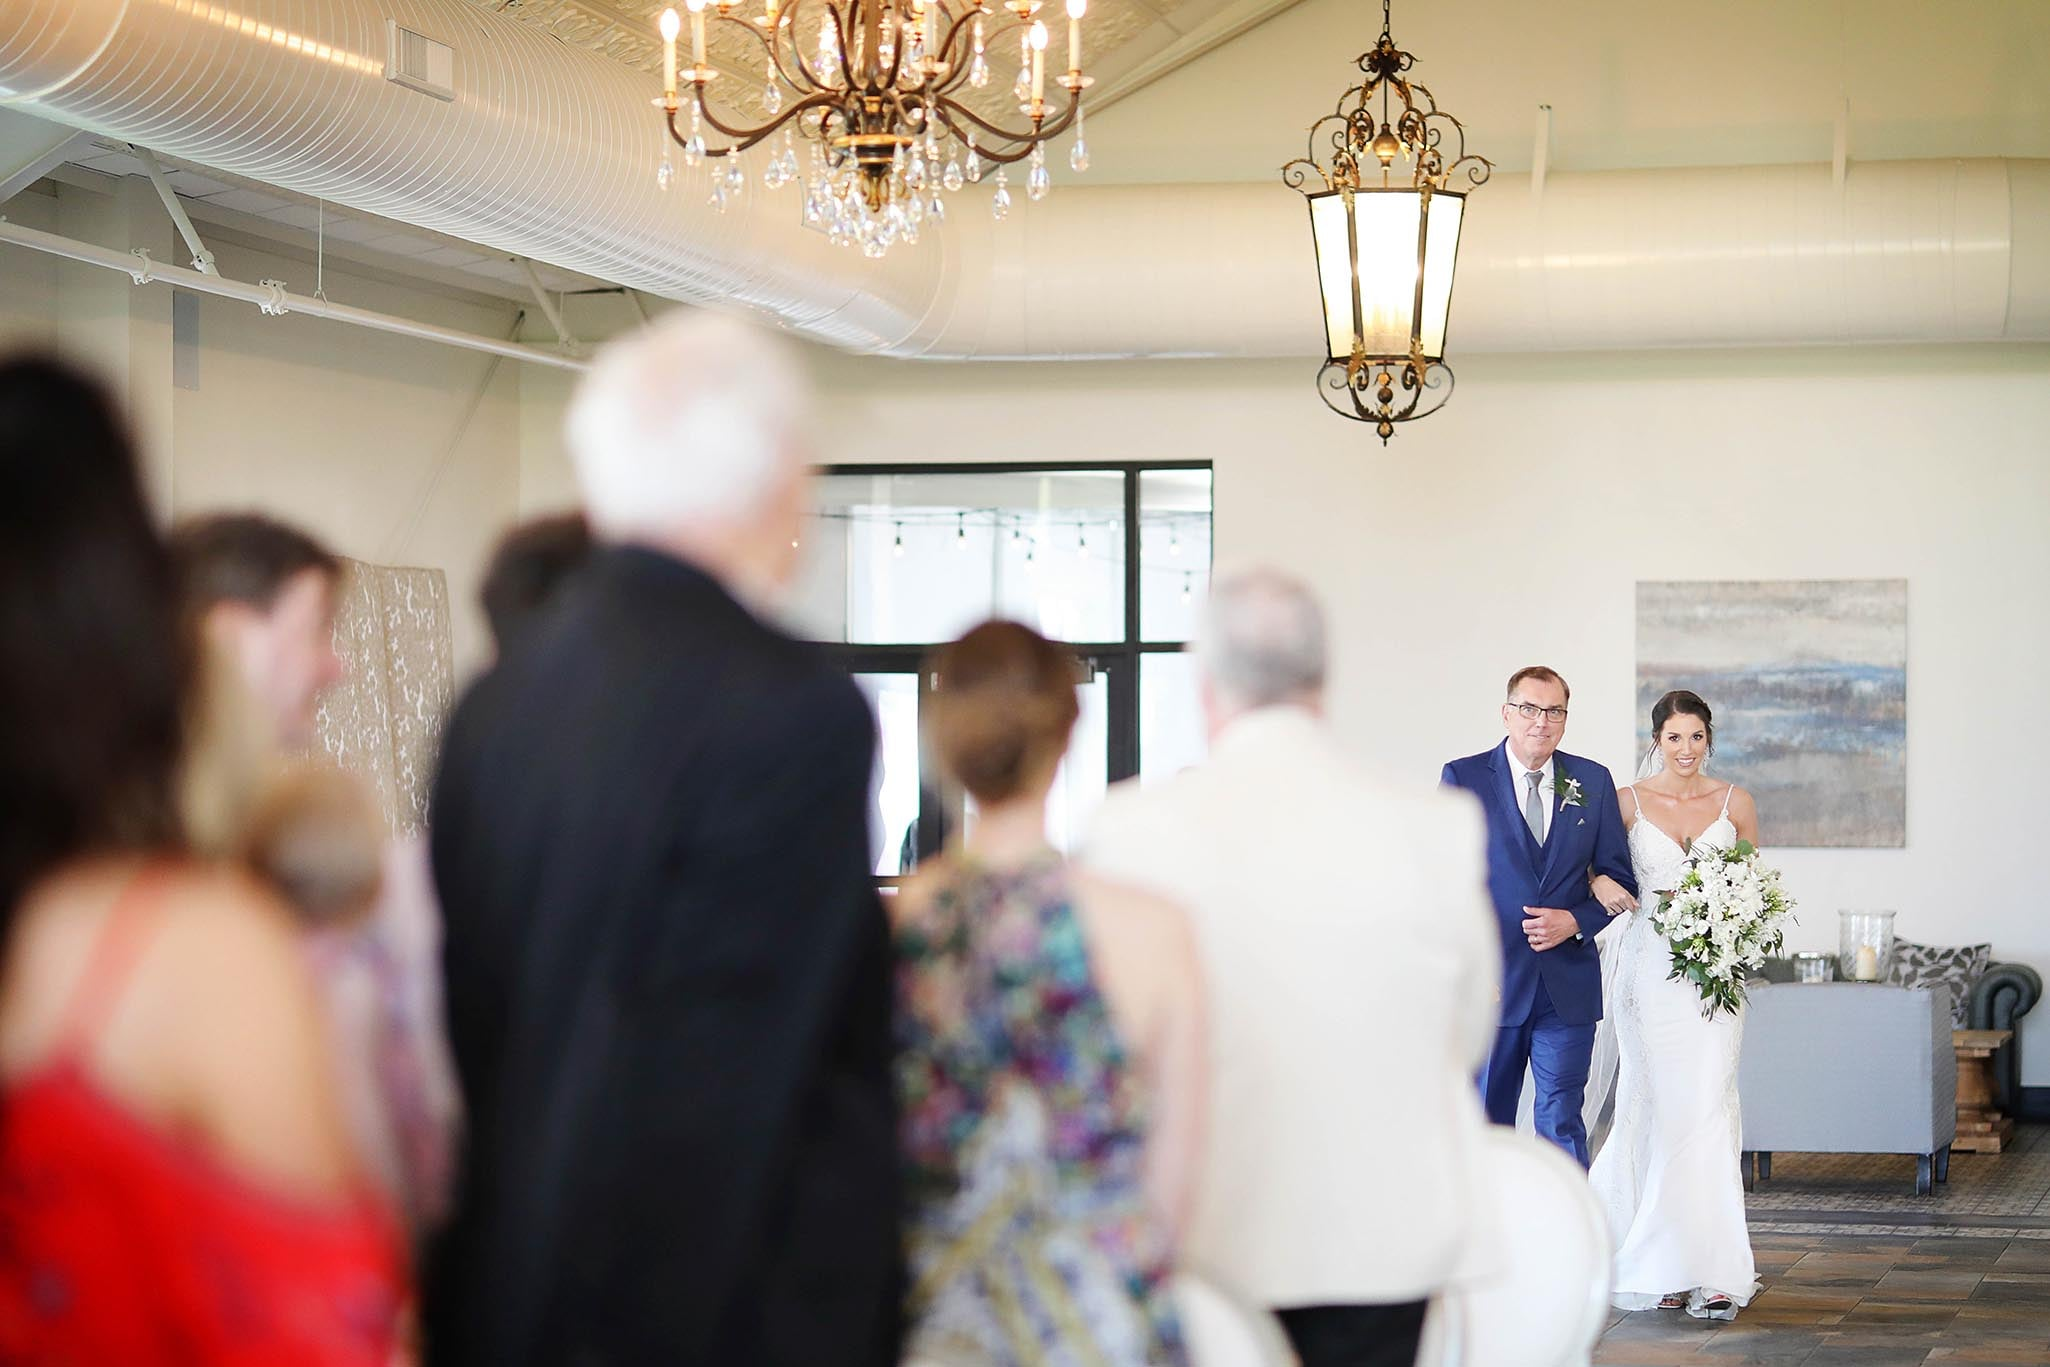 inside-ceremony-spaces-mn-bavaria-downs4.jpg